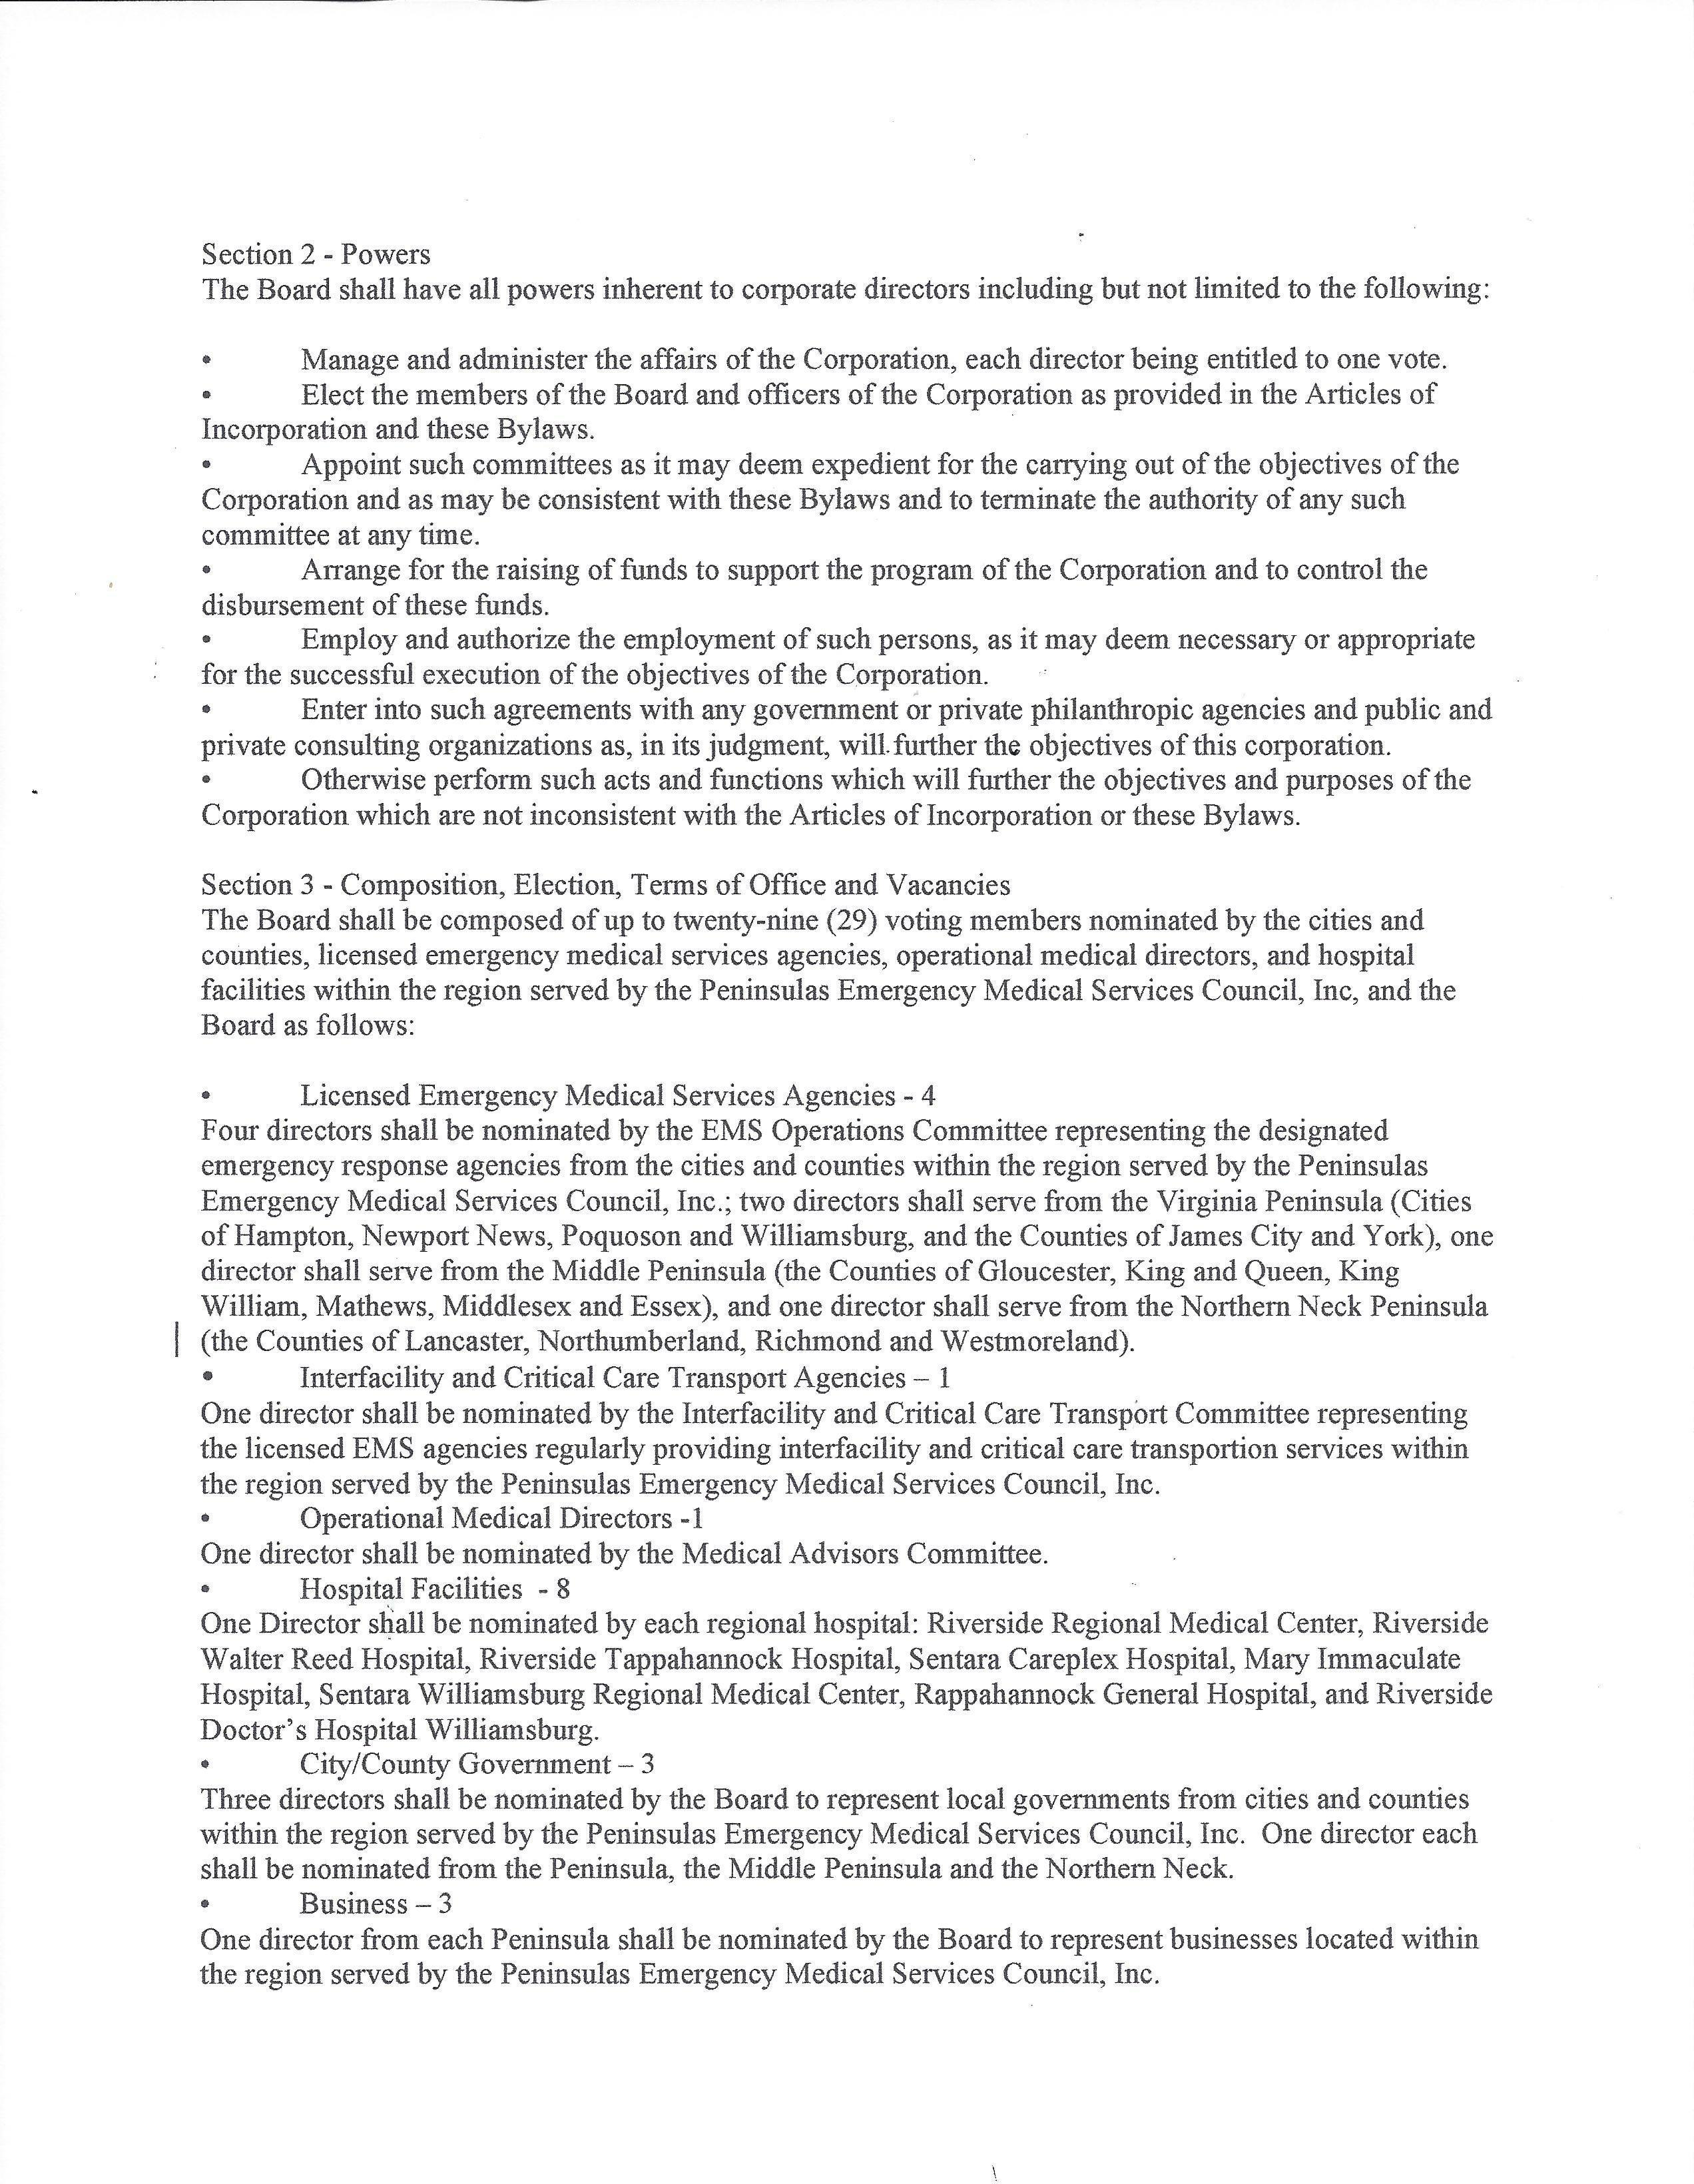 PEMS Council Inc. Bylaws 06 21 17 Page 02 2